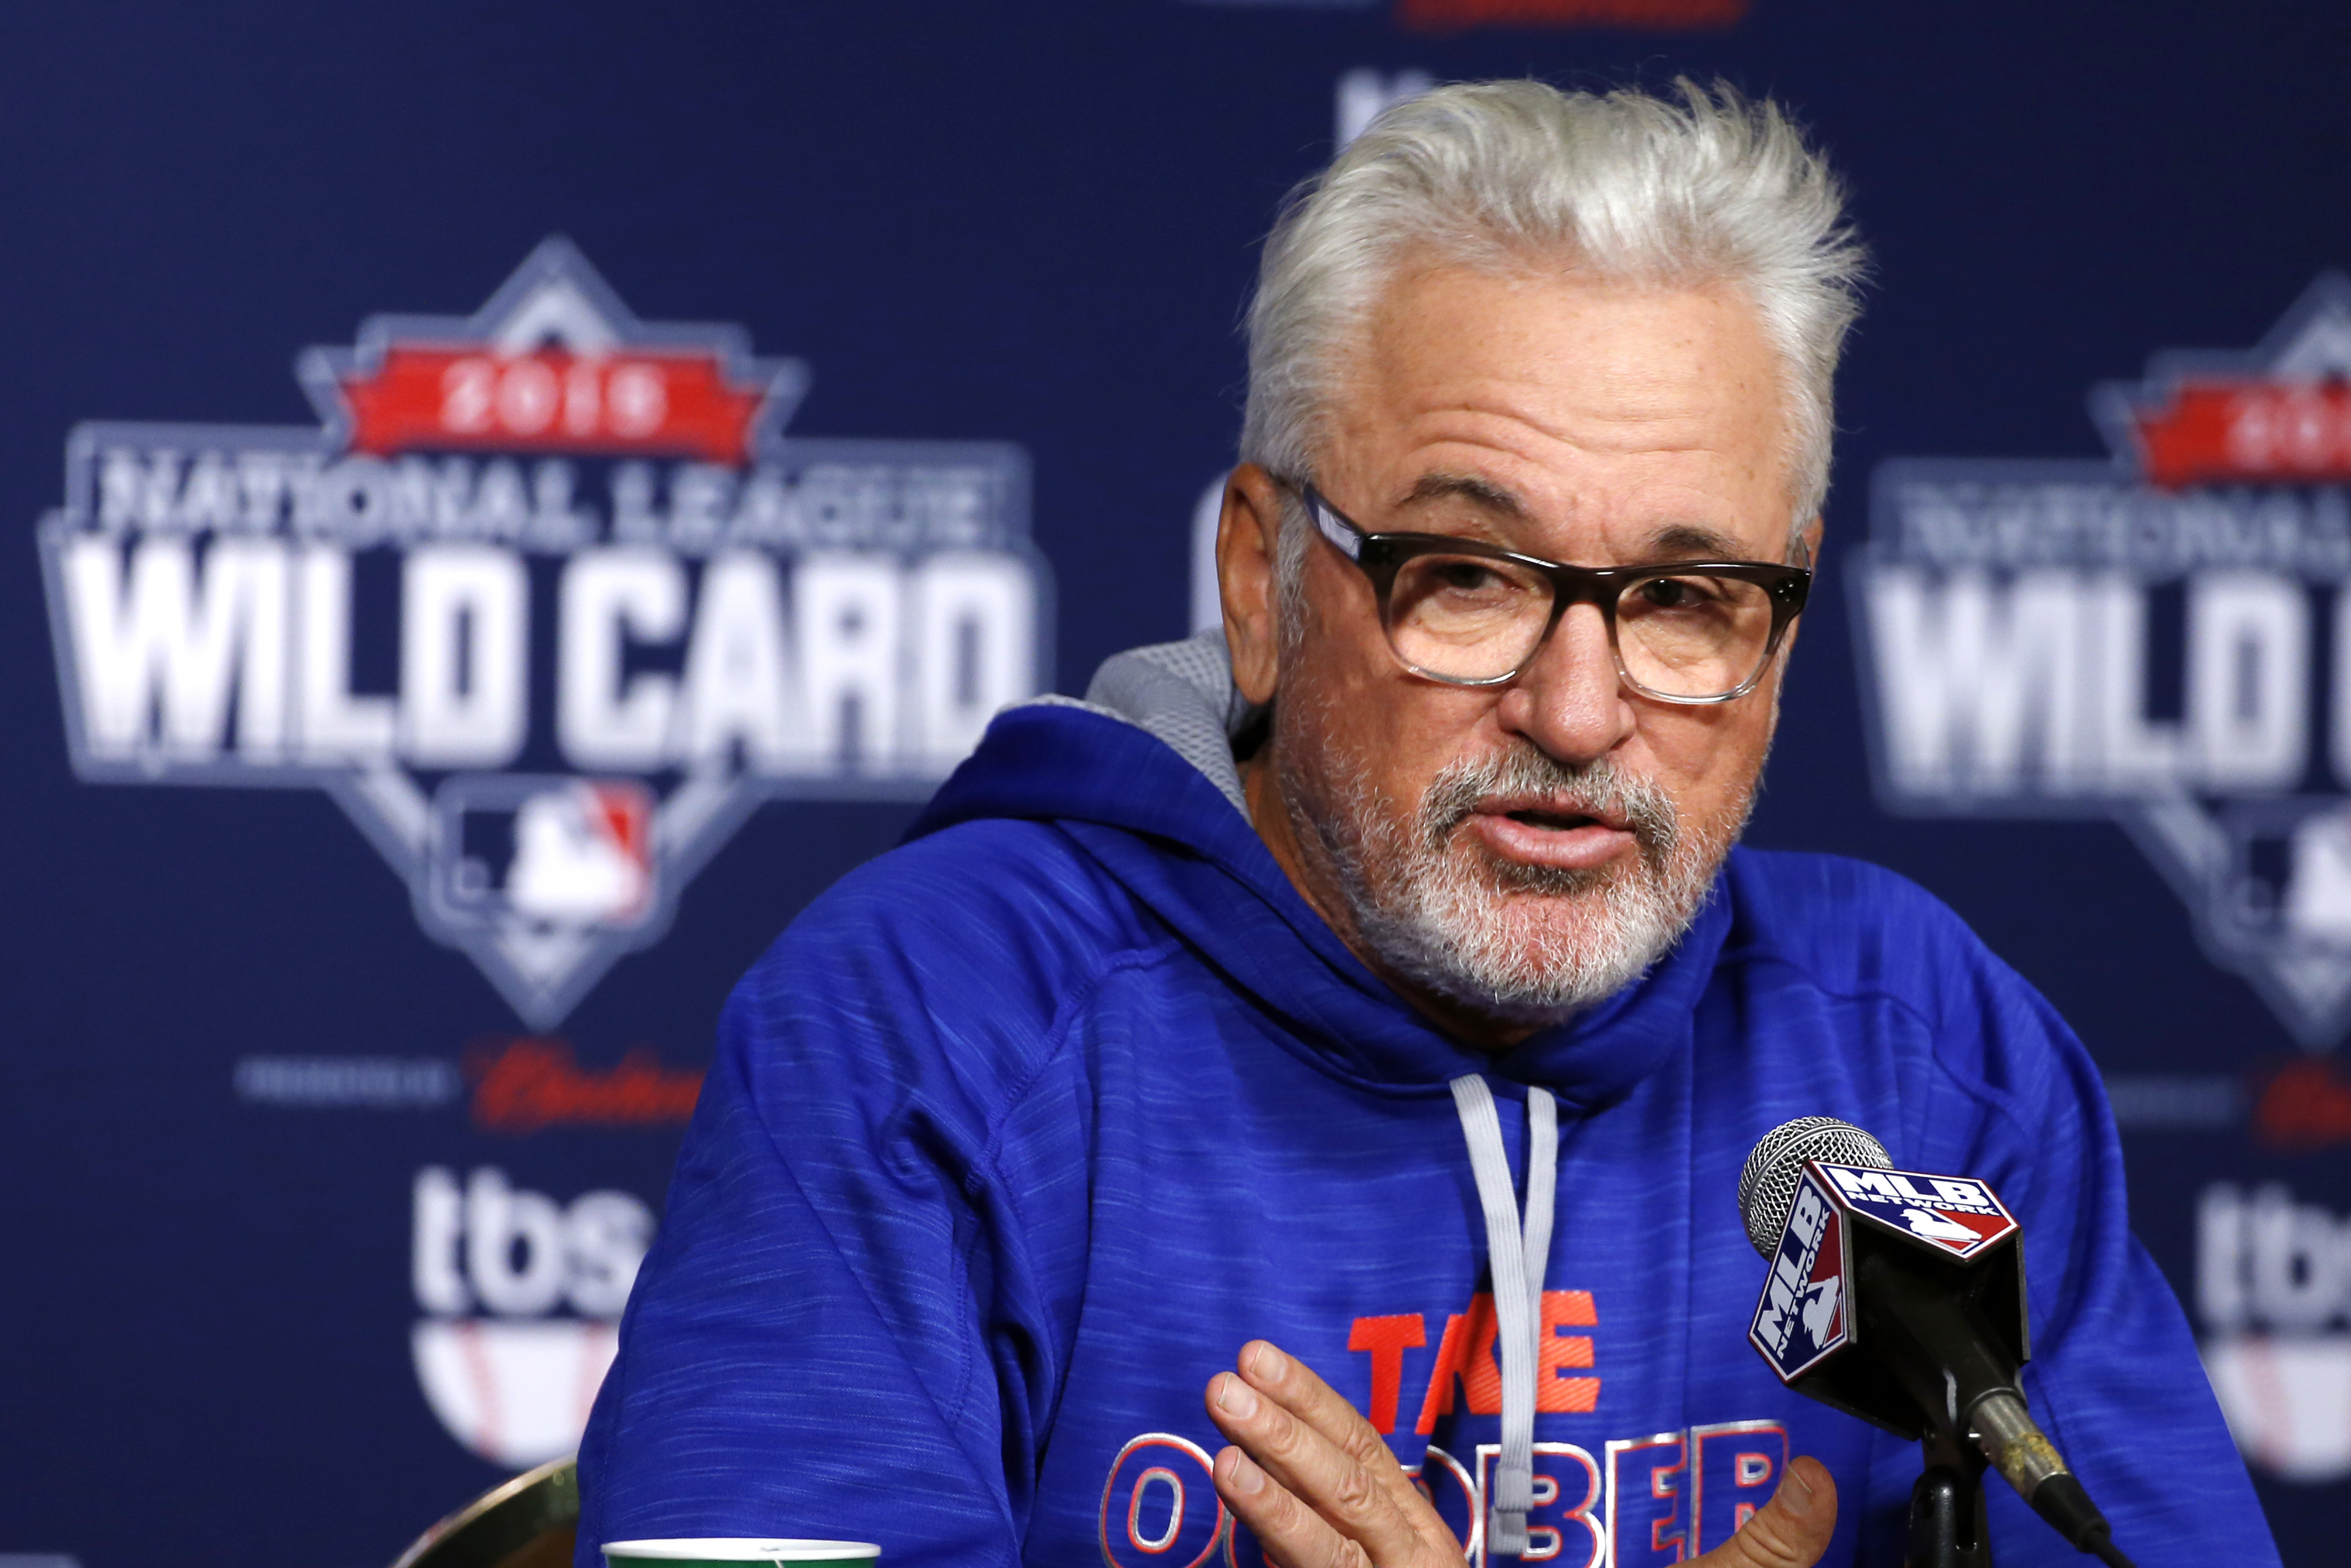 Chicago Cubs manager Joe Maddon answers a question during a press conference on workout day, Tuesday, Oct. 6, 2015, for Wednesday's National League Wild Card baseball game at PNC Park in Pittsburgh, Tuesday, Oct. 6, 2015. (AP Photo/Gene J. Puskar)